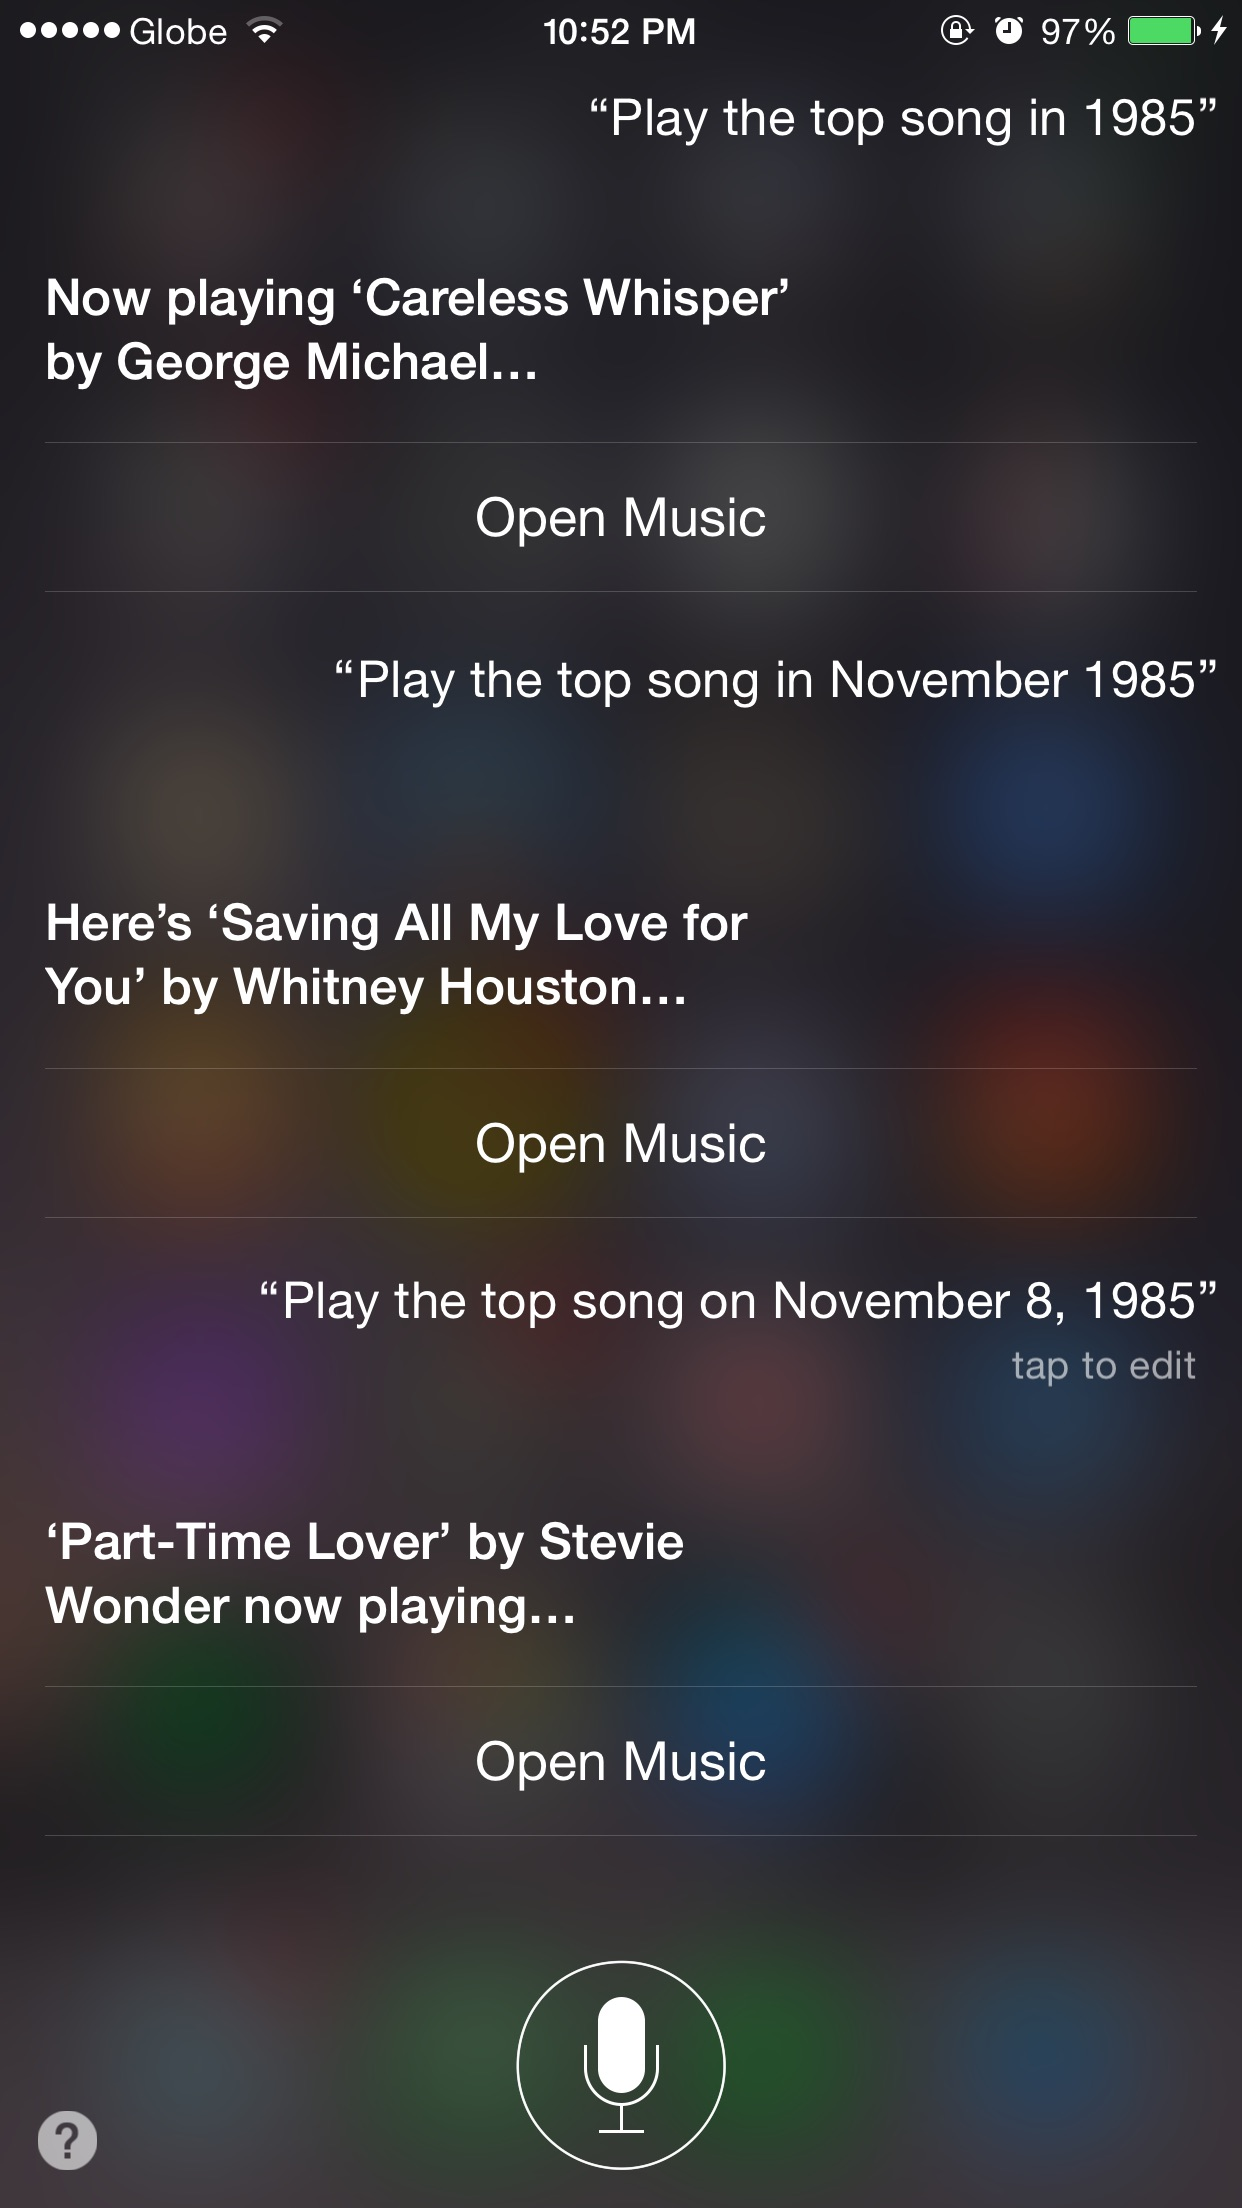 Siri, take me back in time